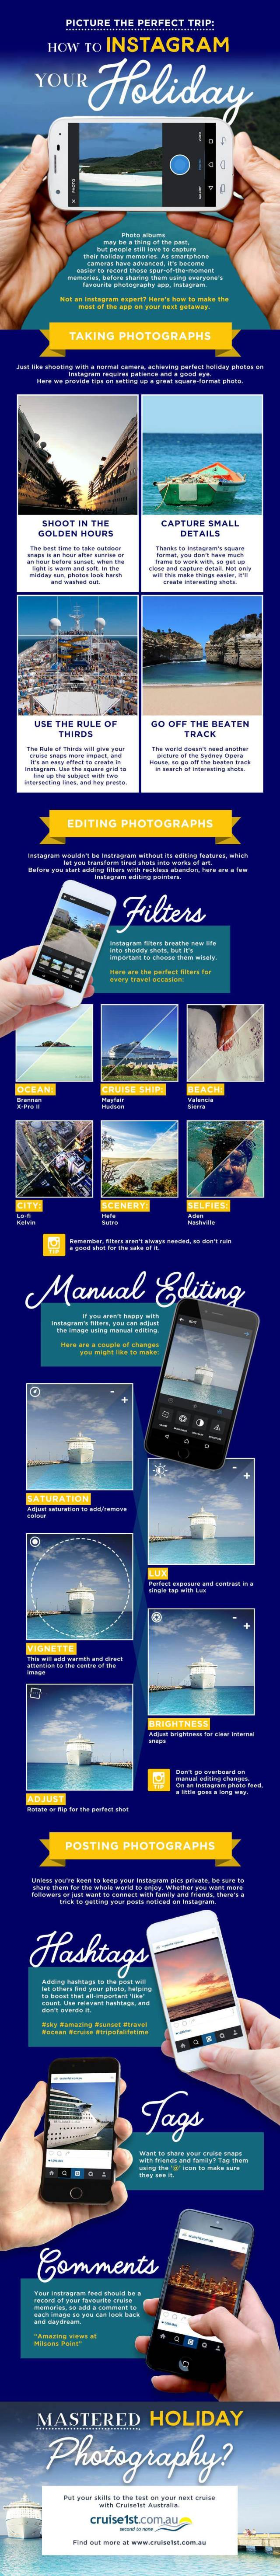 How to Instagram Your Holiday